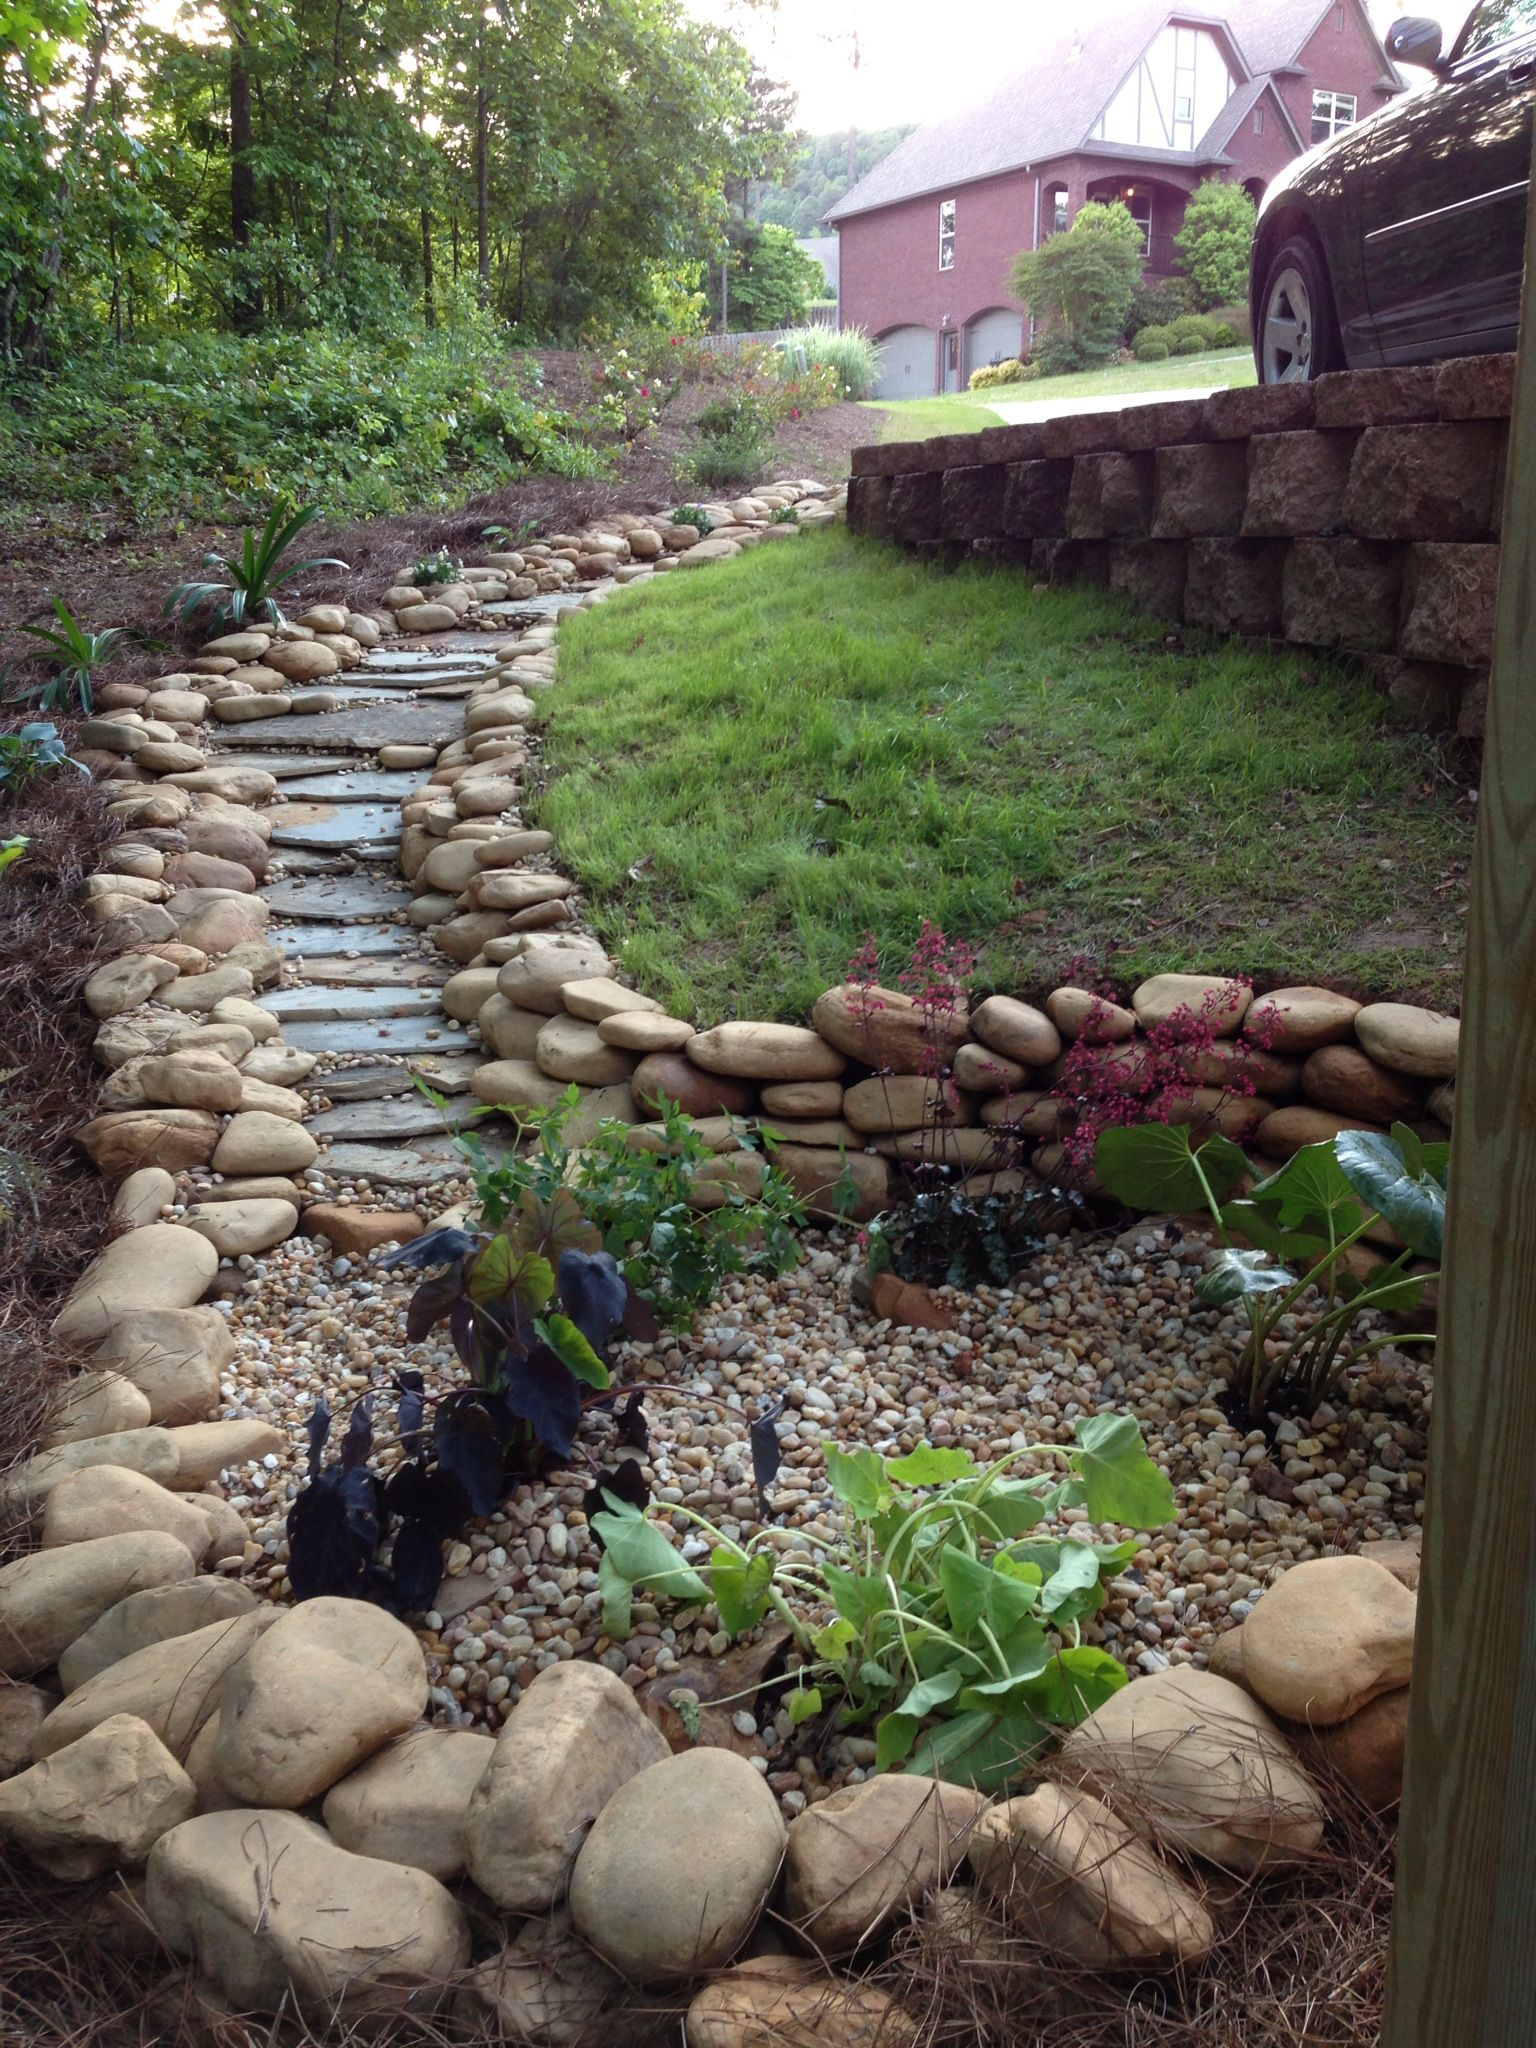 The dry creek bed that ends into a rain garden. I designed